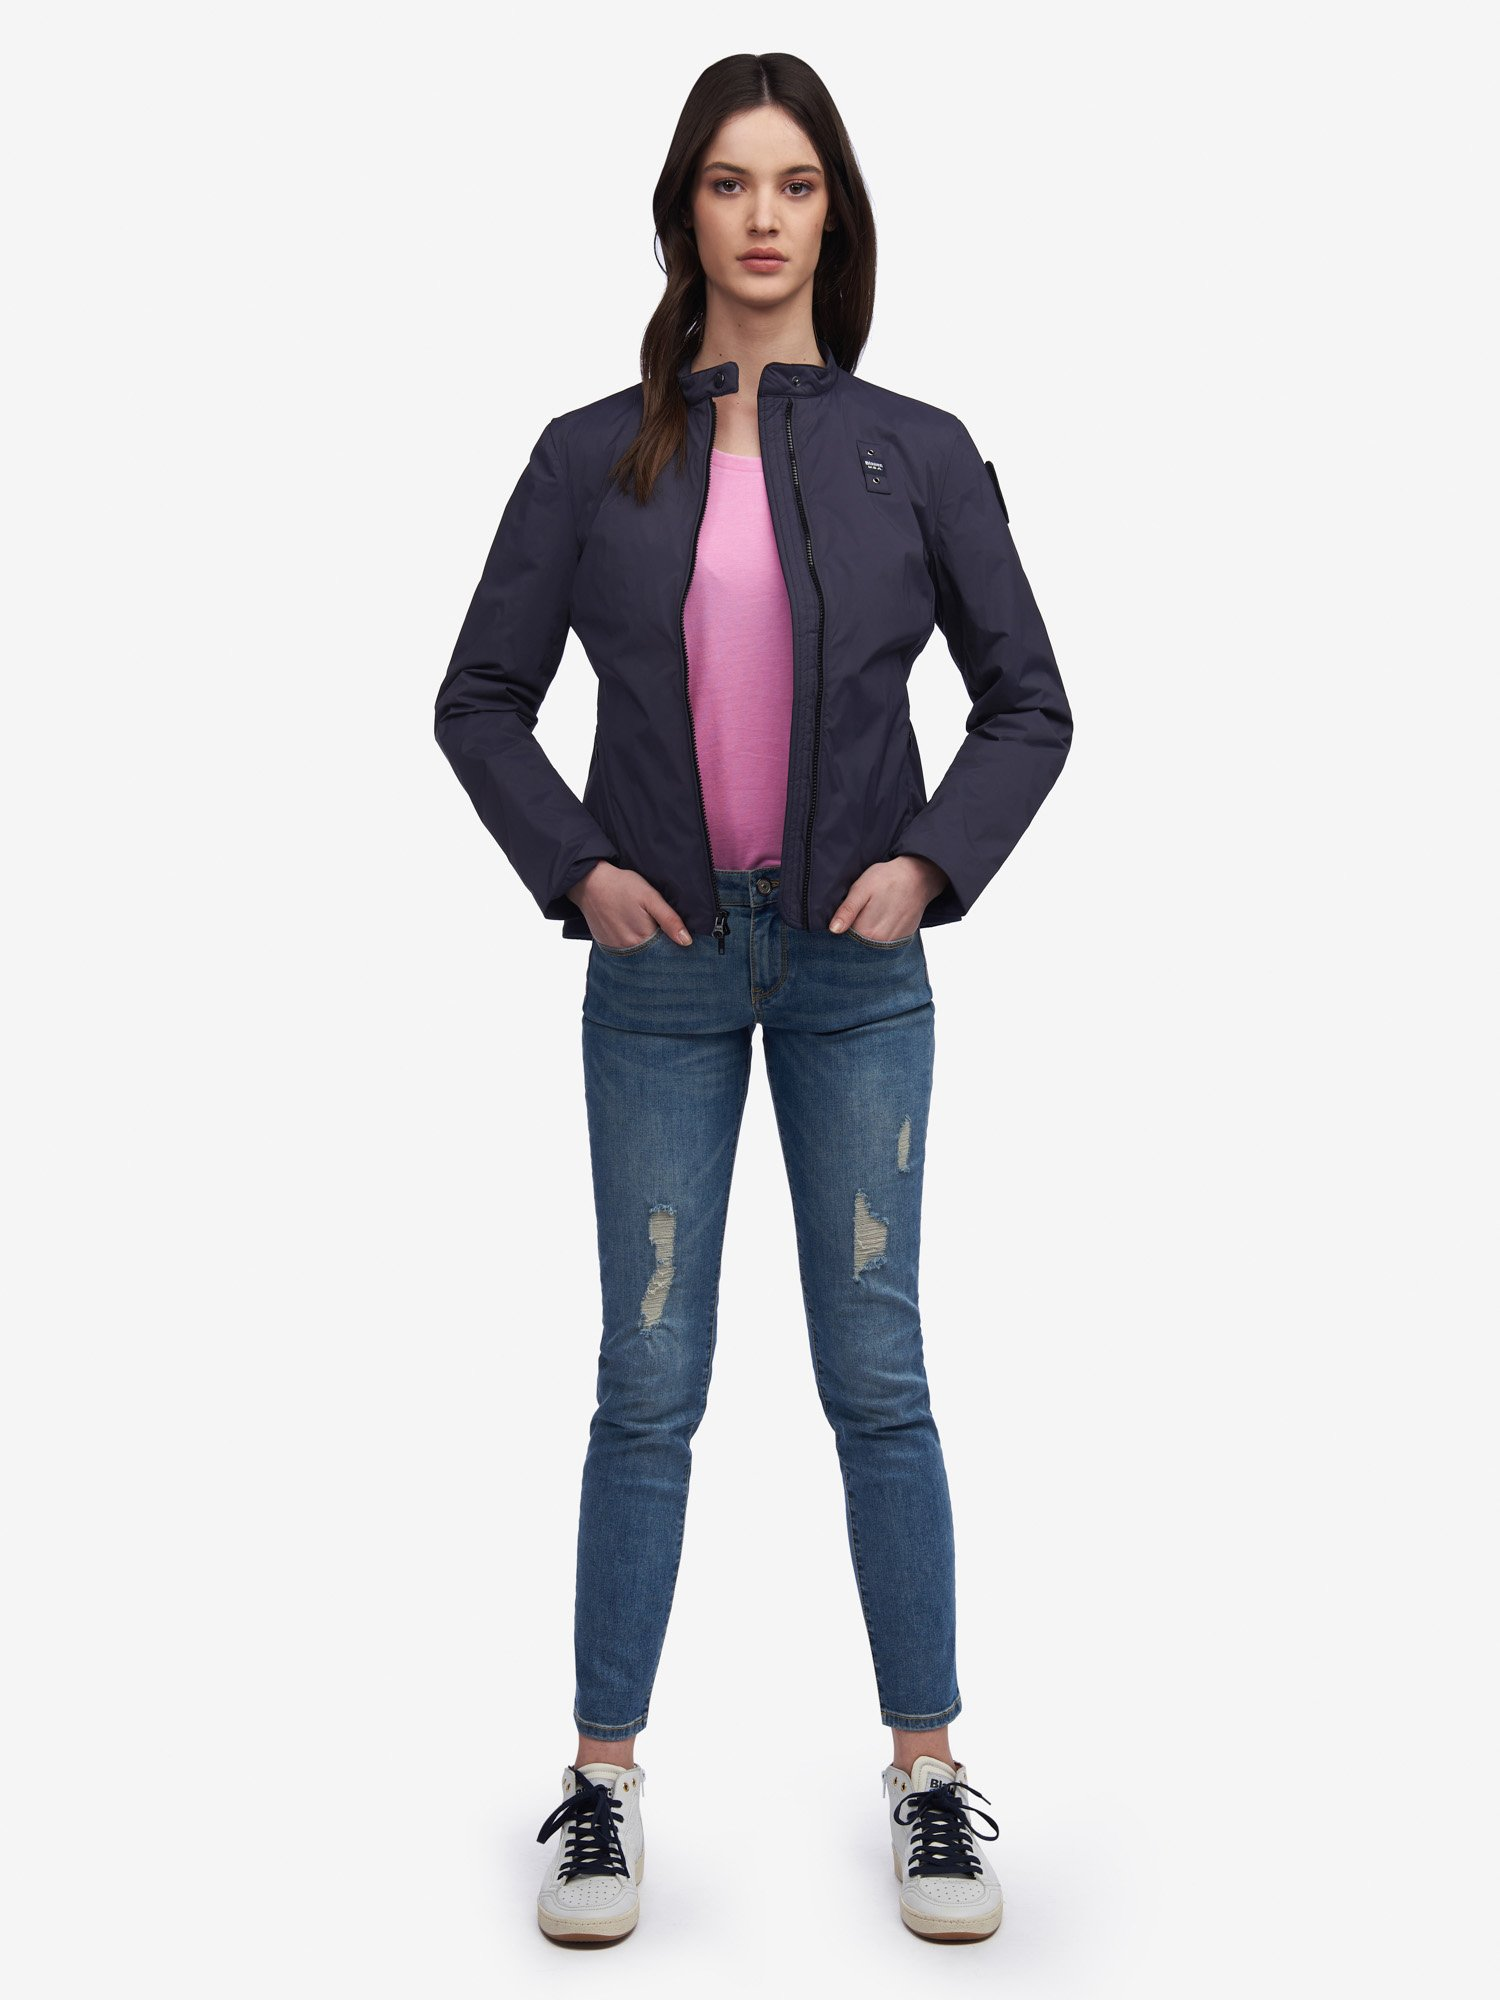 8ddcd33d78a20 Womens Clothing Collection - Buy Online | Blauer USA ®